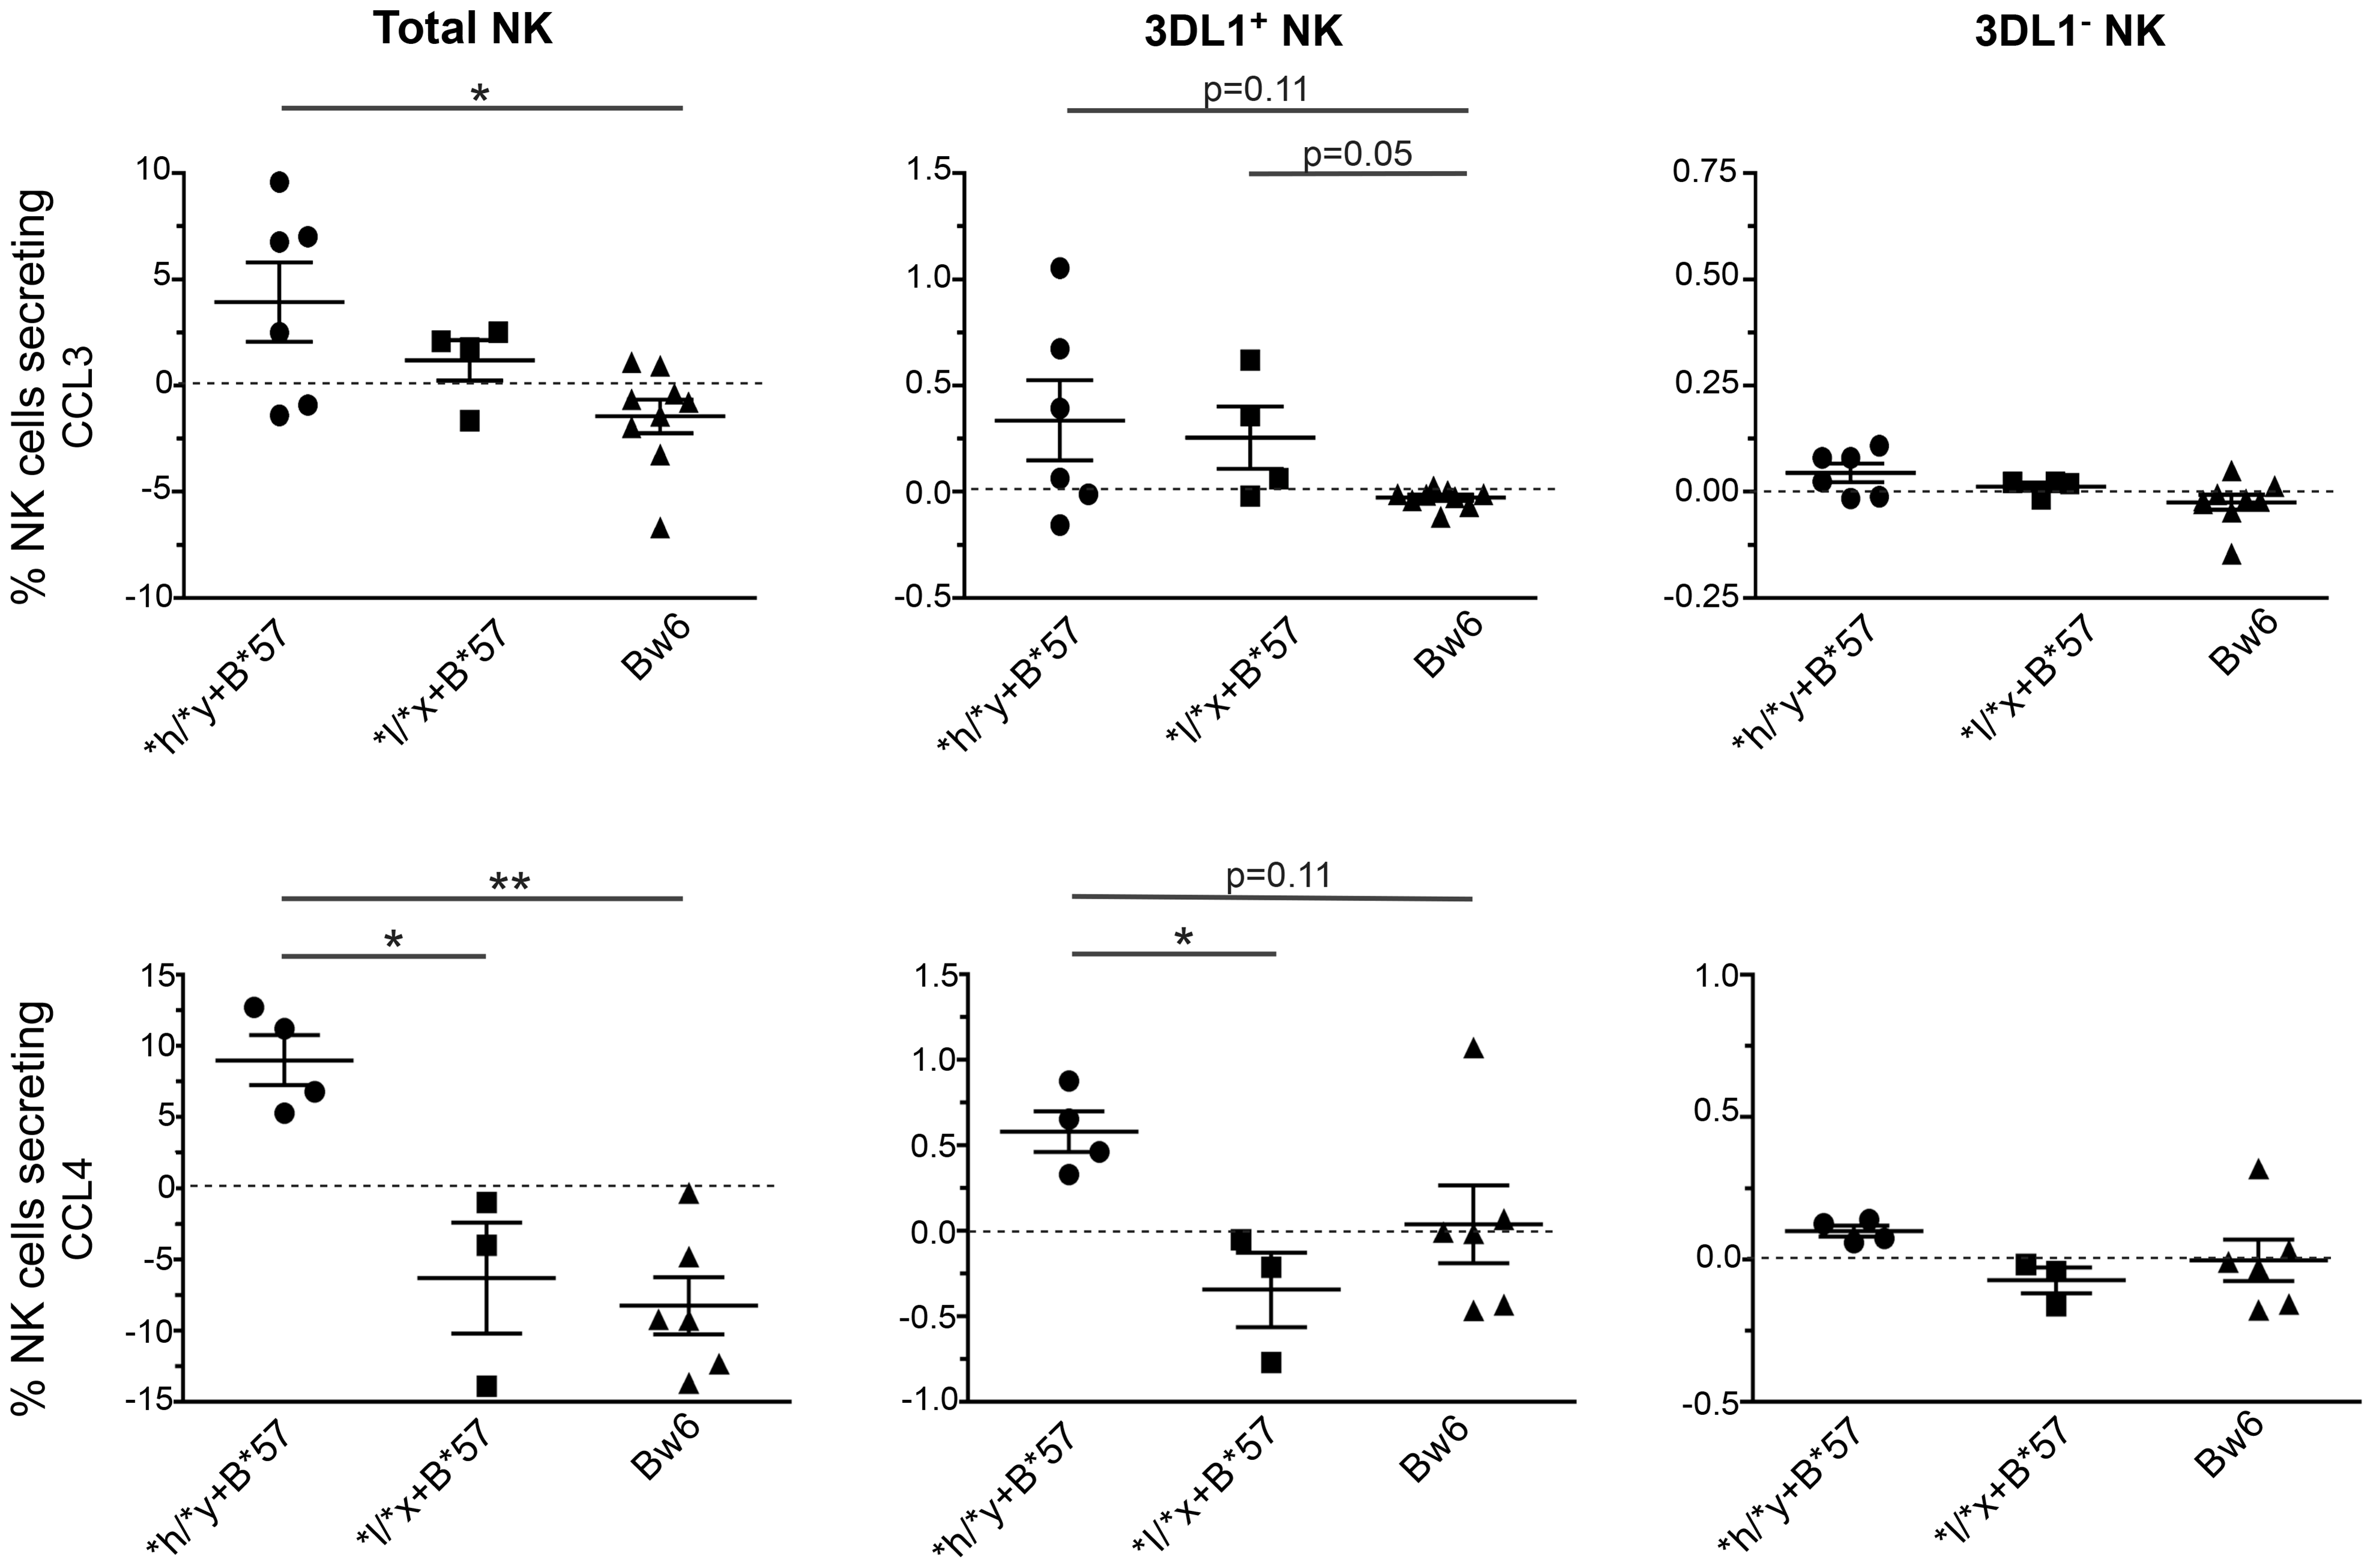 Percent of CCL3+ and CCL4+ NK cells and NK cell subsets following stimulation with autologous HIV infected CD4 (iCD4) cells.